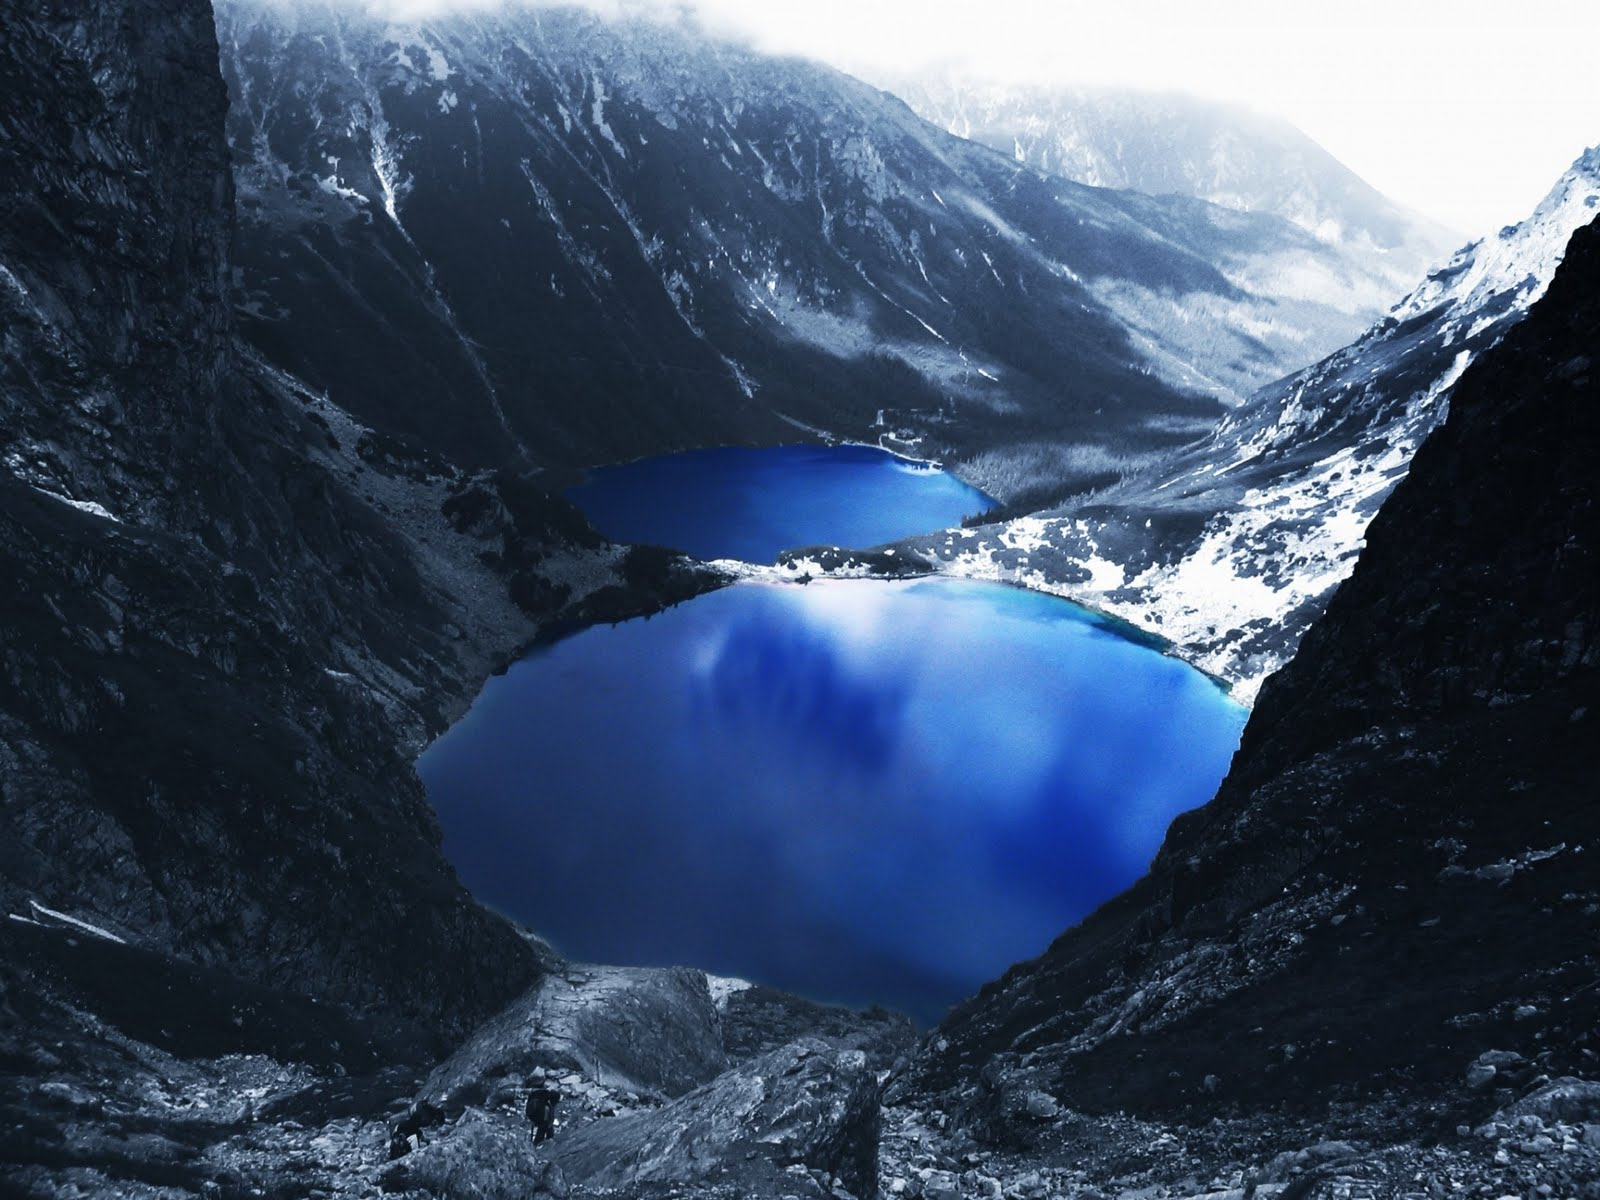 blue lake snow mountains wallpaper images picture hd views